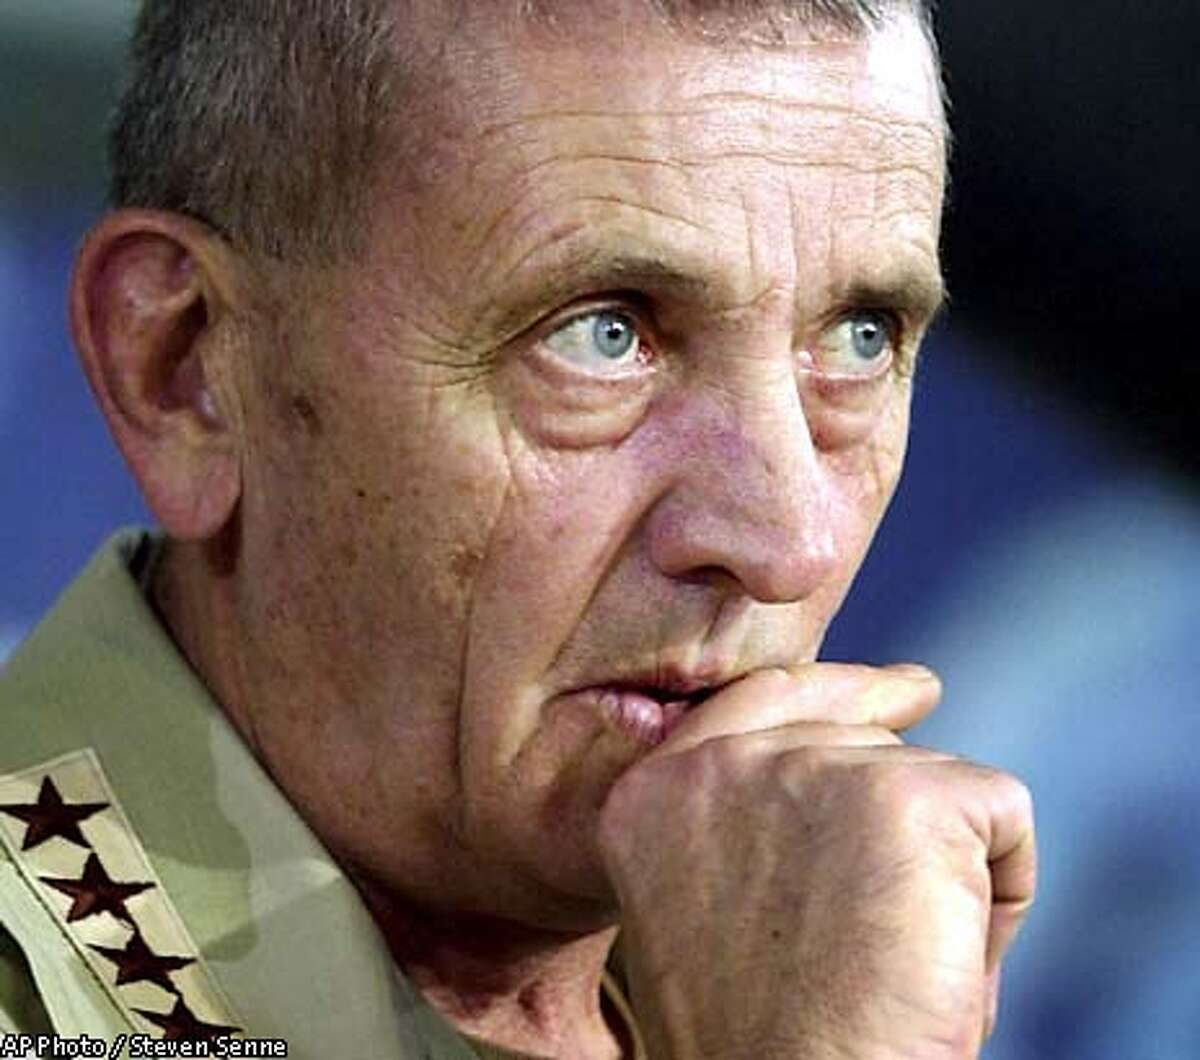 Gen. Tommy Franks, Commander of U.S. Central Command, listens to a question during a news conference at the Coalition Media Center, at Camp As Sayliyah, in Doha, Qatar, Saturday, March 22, 2003. Franks spoke about the progress in the war on Iraq. (AP Photo / Steven Senne)